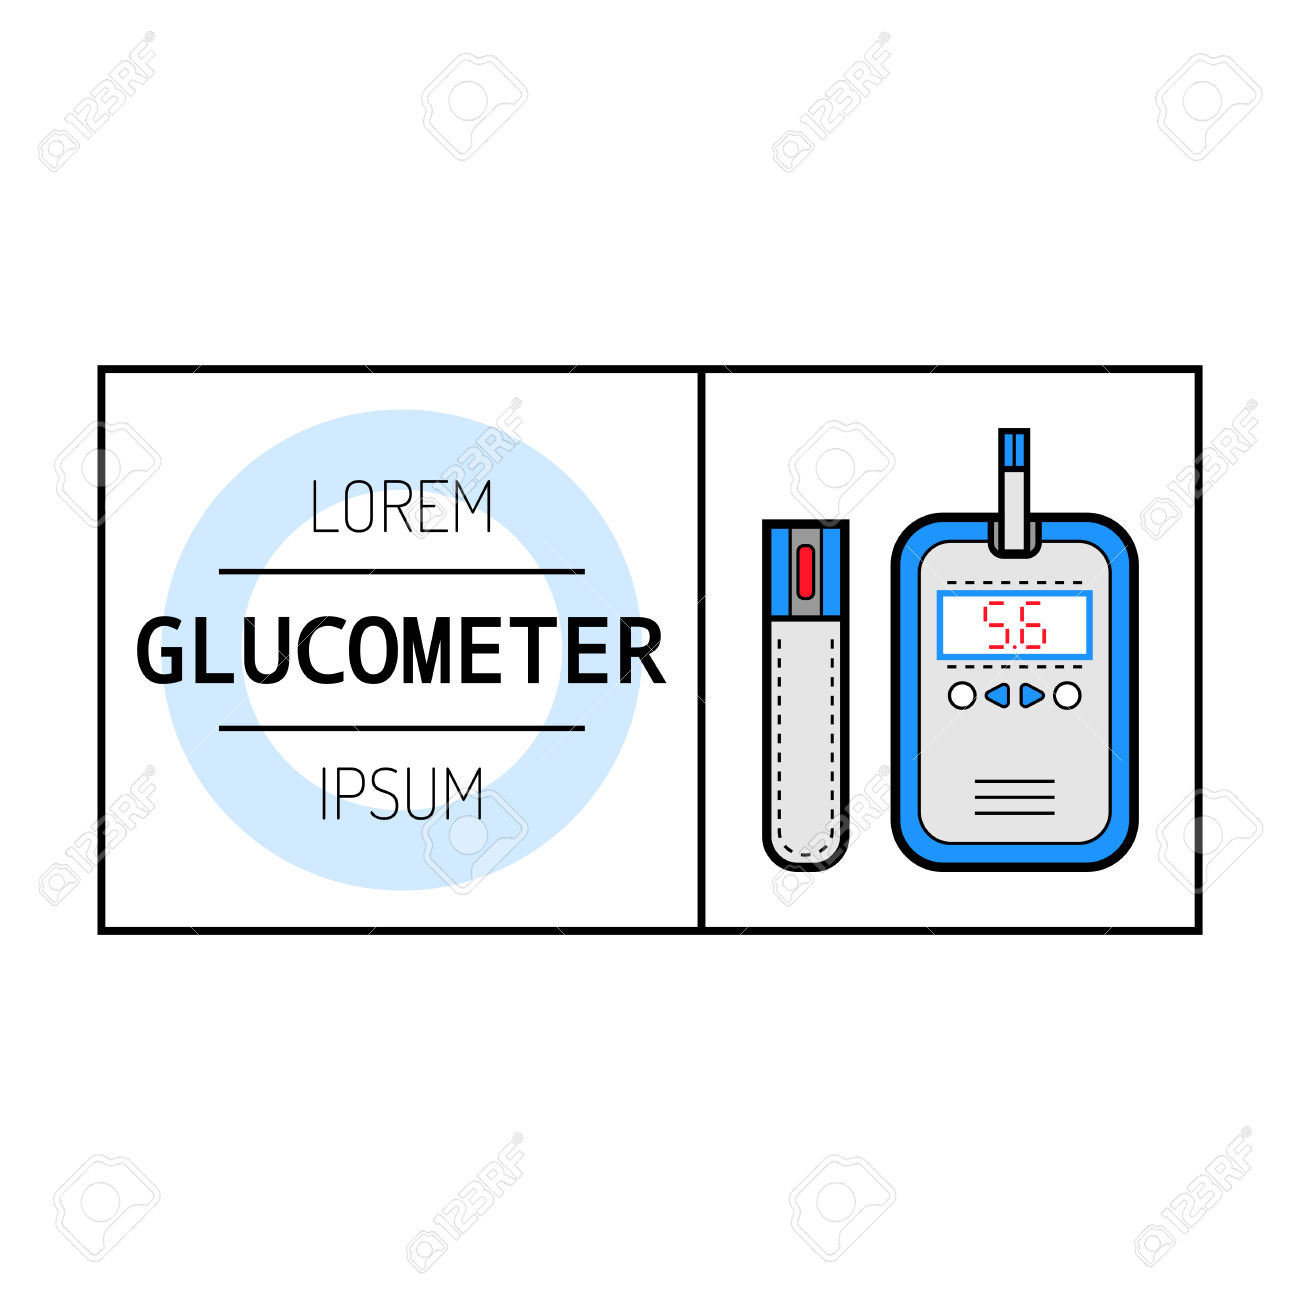 Glucometer And Test Strip For Determination Of Glucose. Label.